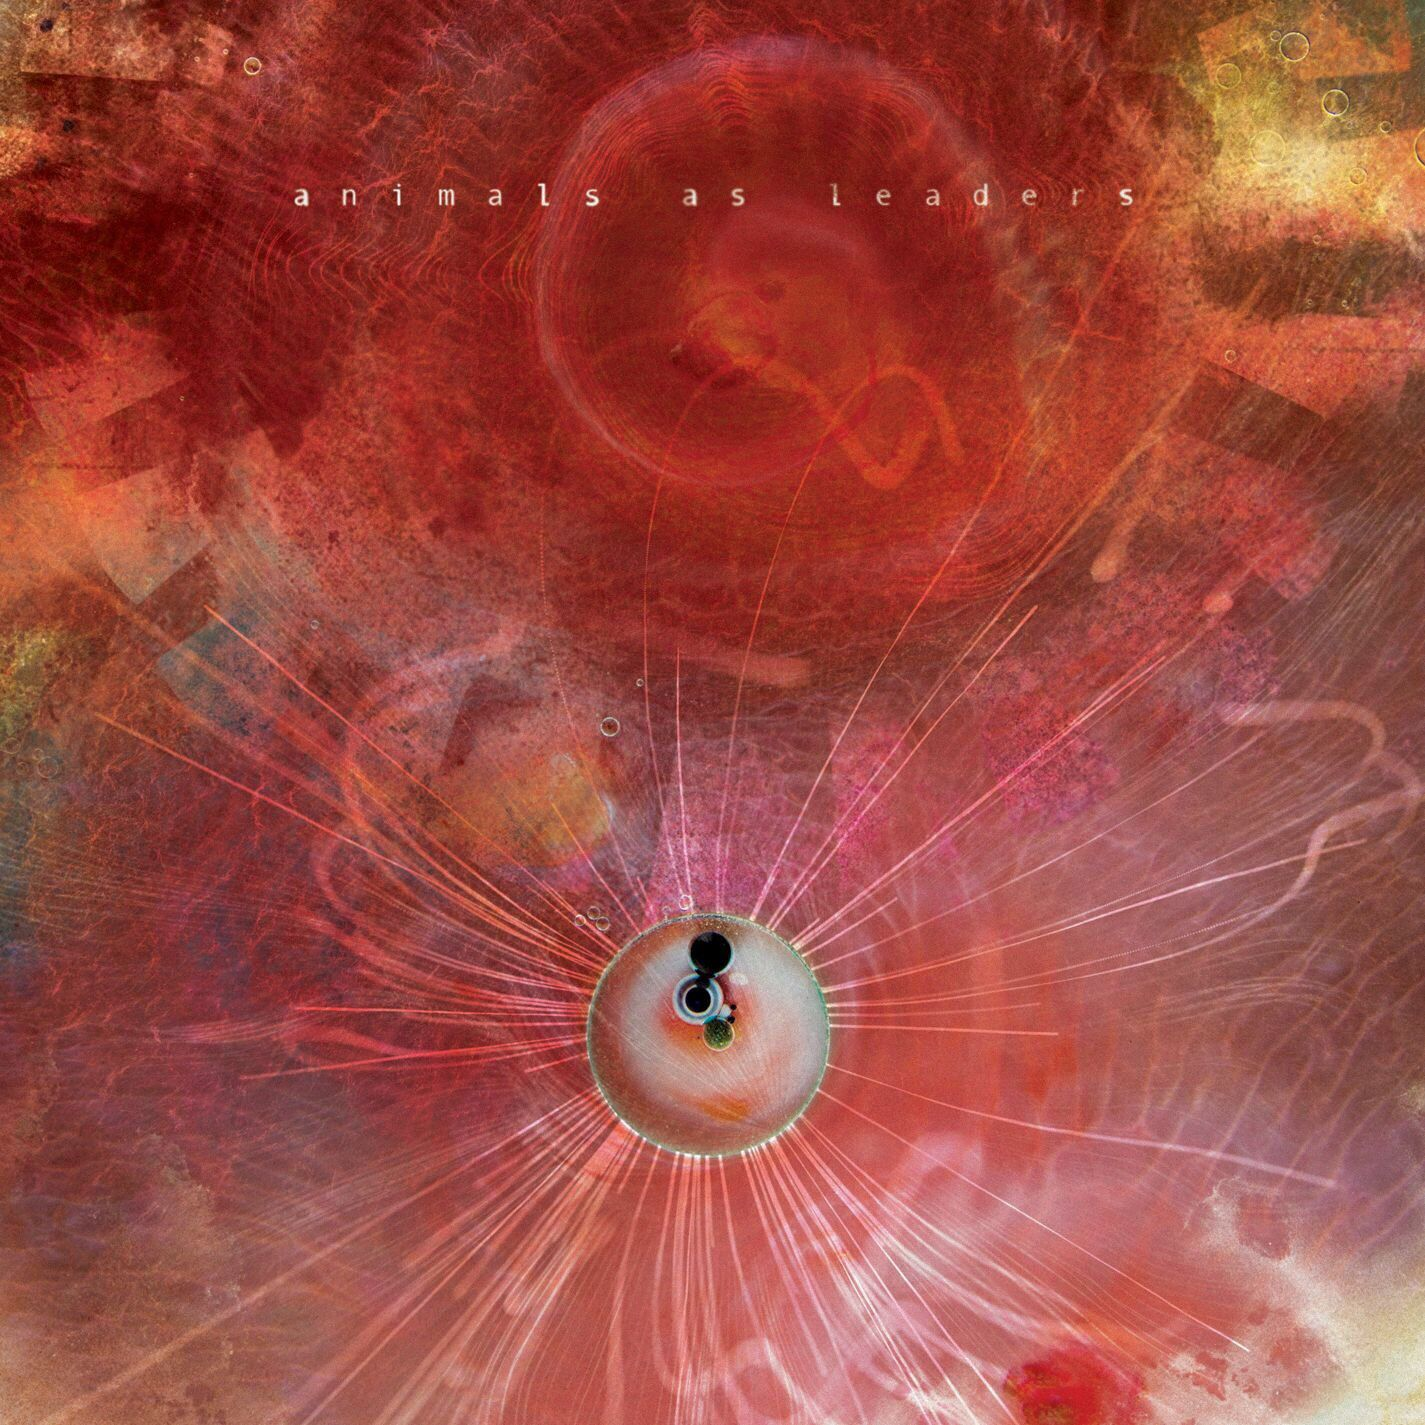 The Joy Of Motion Animals As Leaders Amazing Album Amazing Band Experimental Fotos